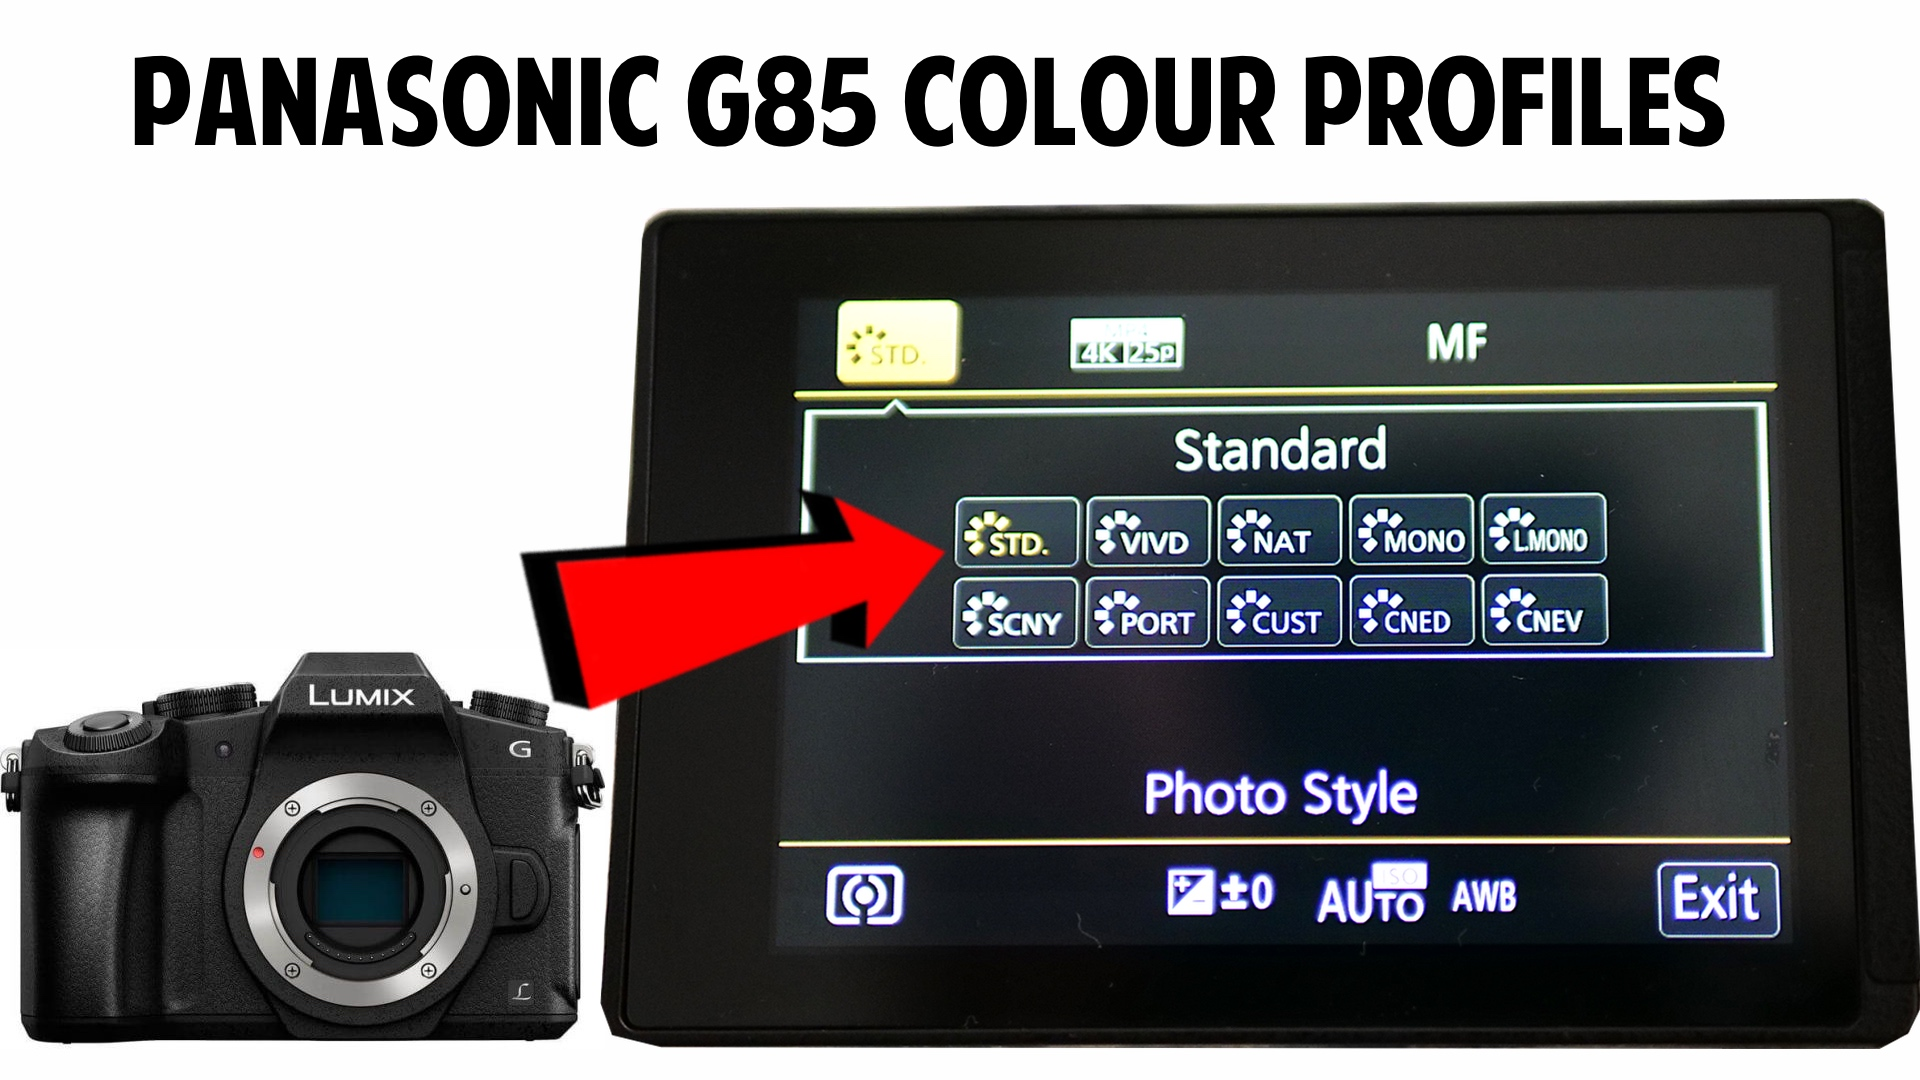 Panasonic G85 Color Profiles Explained